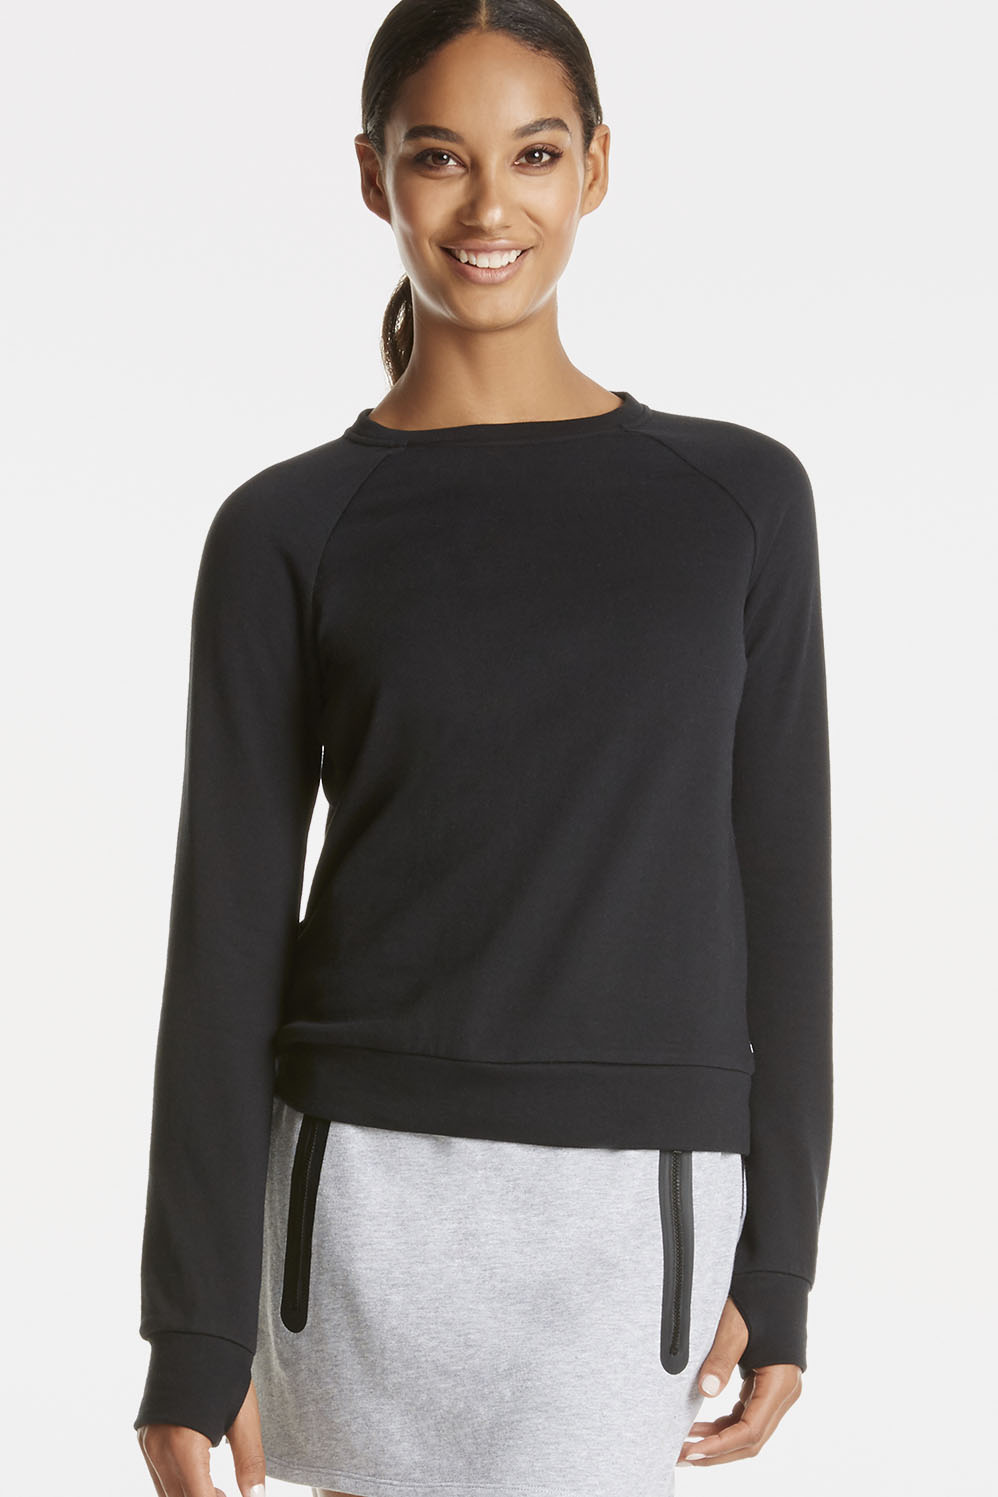 Fabletics T Shirt Ginger Pullover Womens Black Size XS